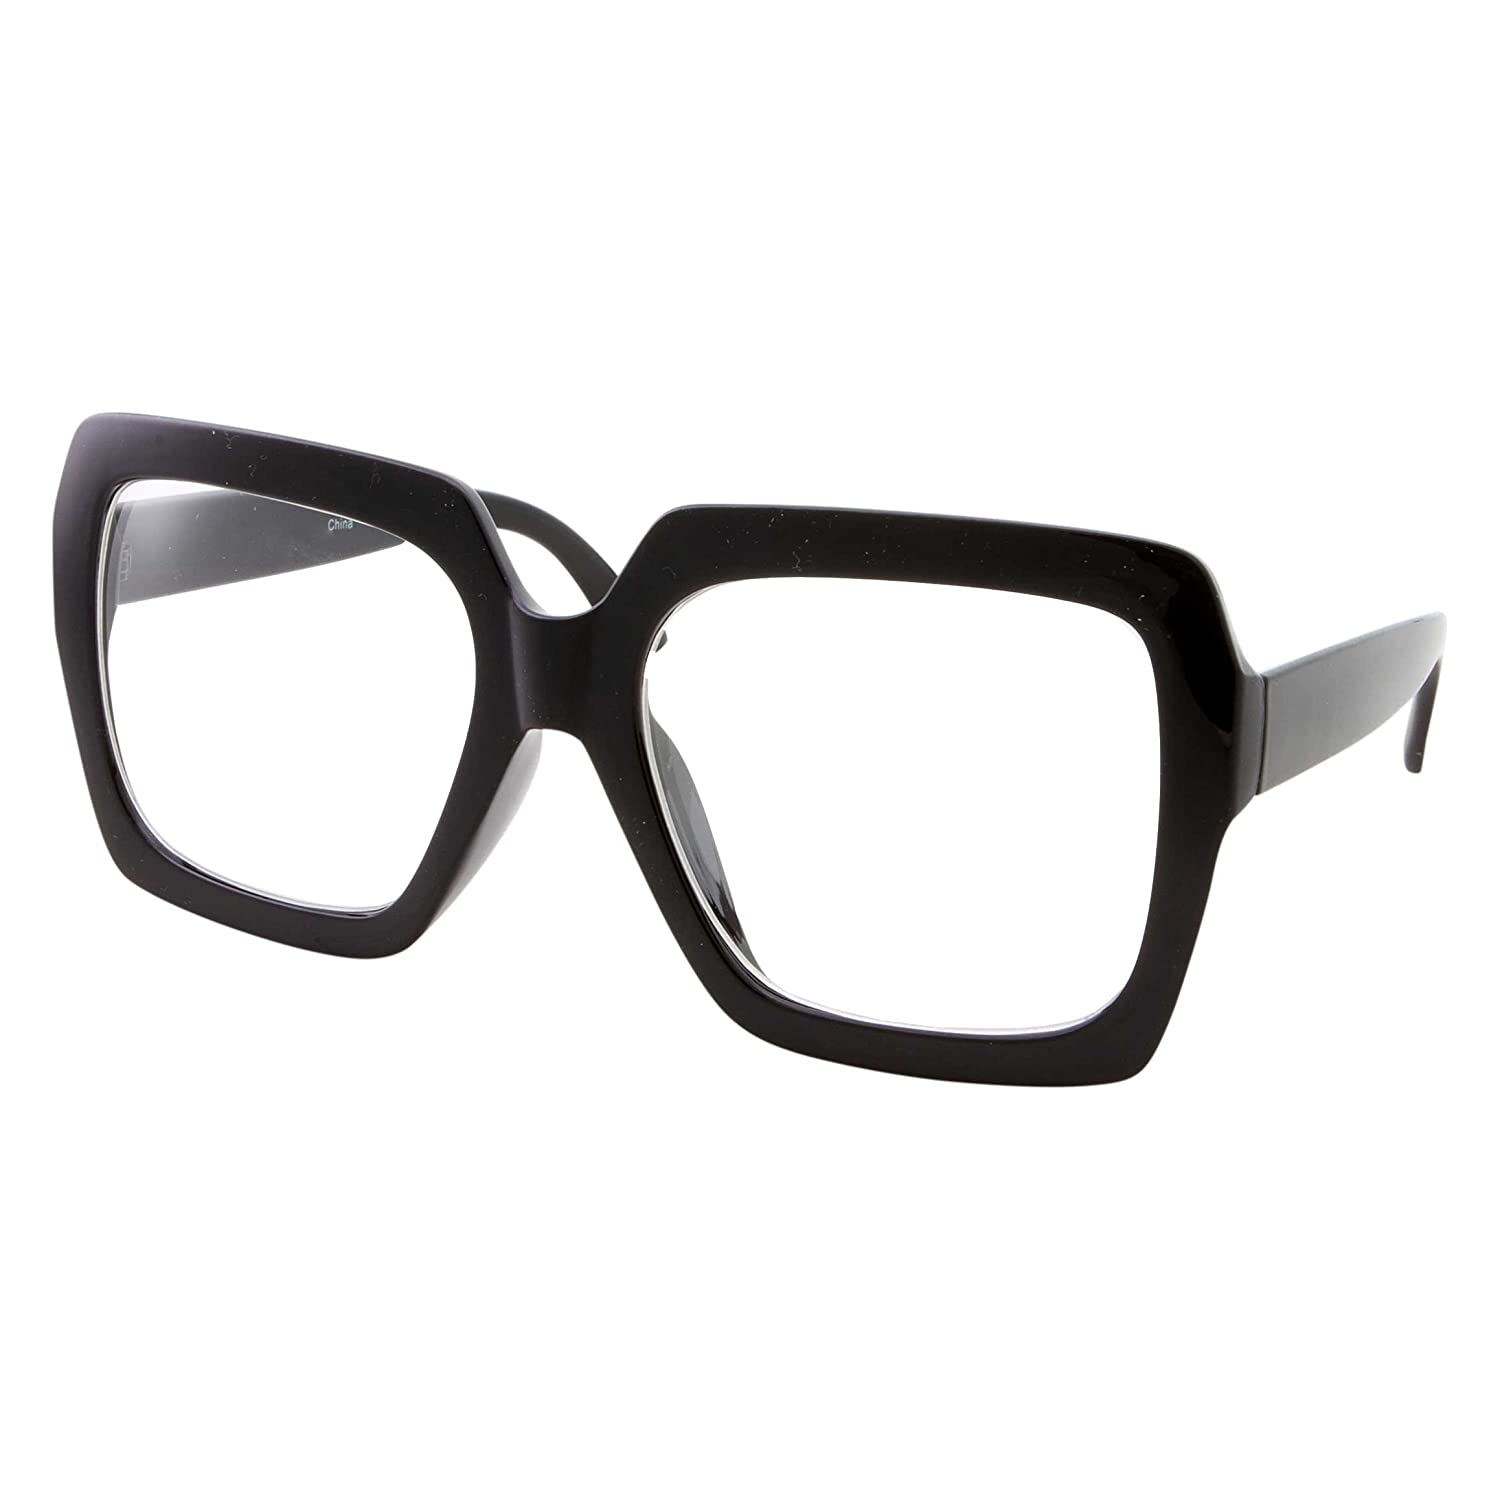 bcf040ad3651 Amazon.com: XL Black Thick Square Oversized Clear Lens Glasses - Men and  Women Costume or Fashion (Black): Clothing